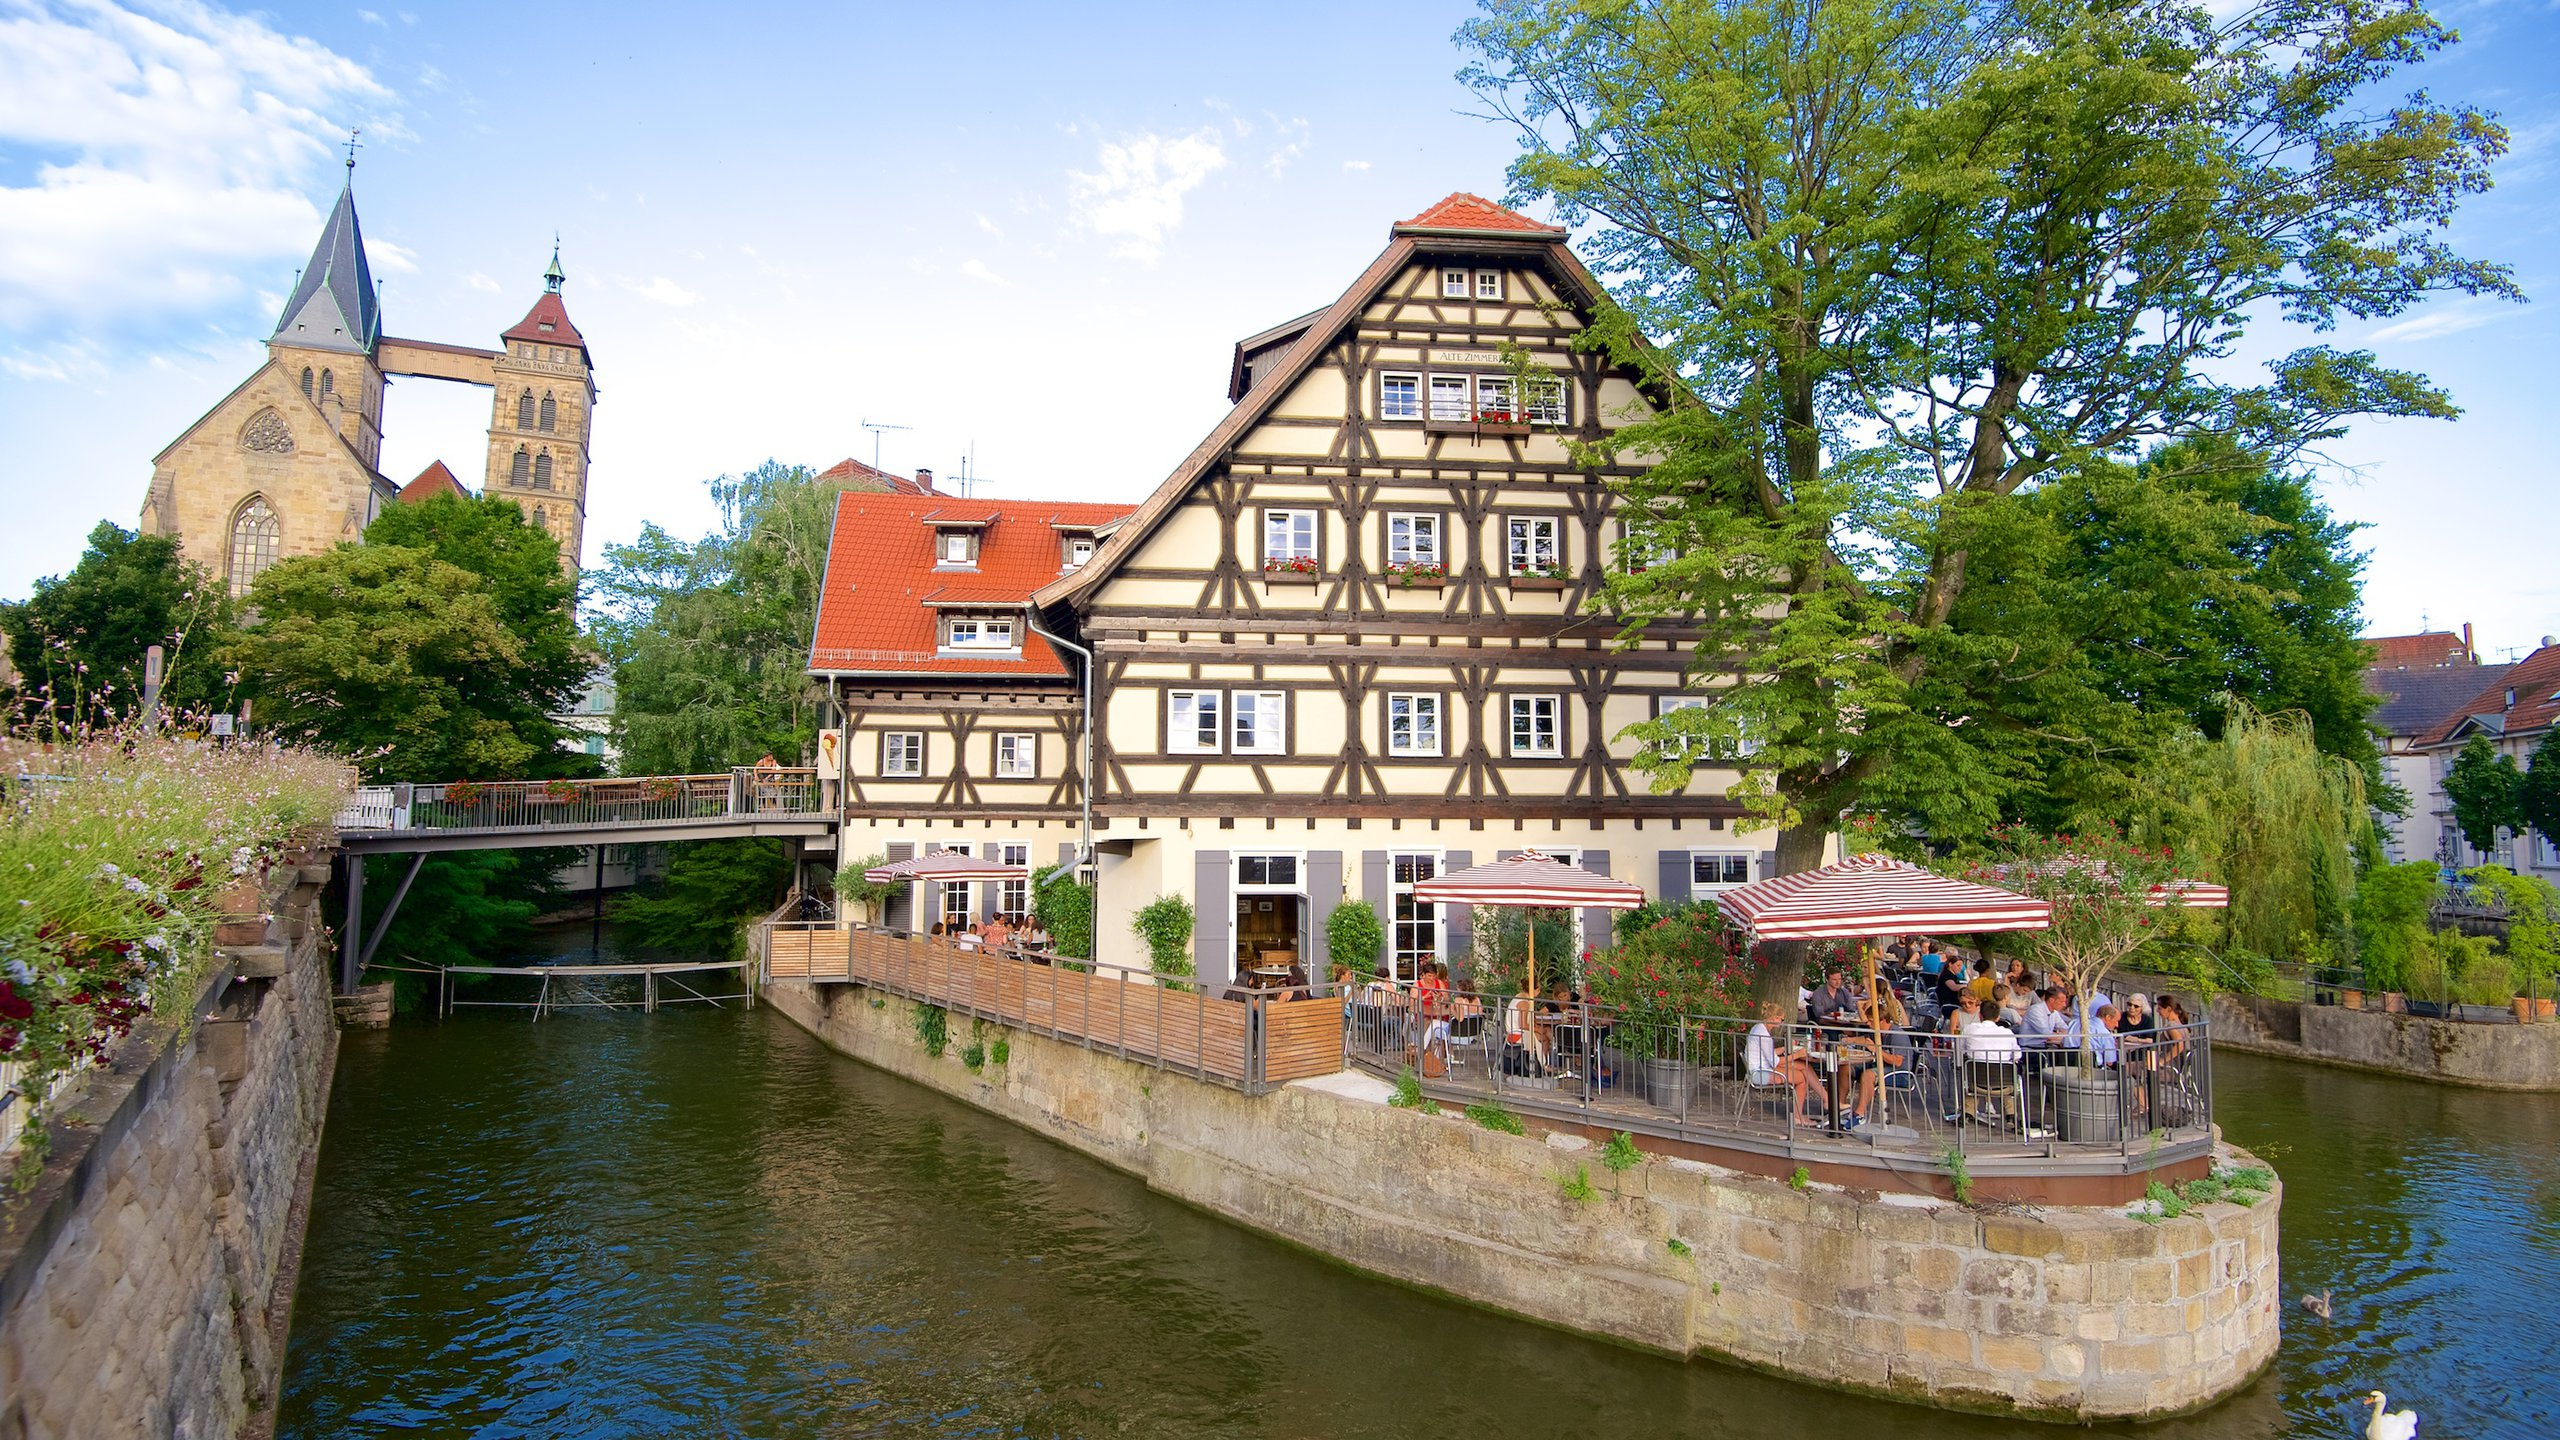 Esslingen which includes a river or creek and outdoor eating